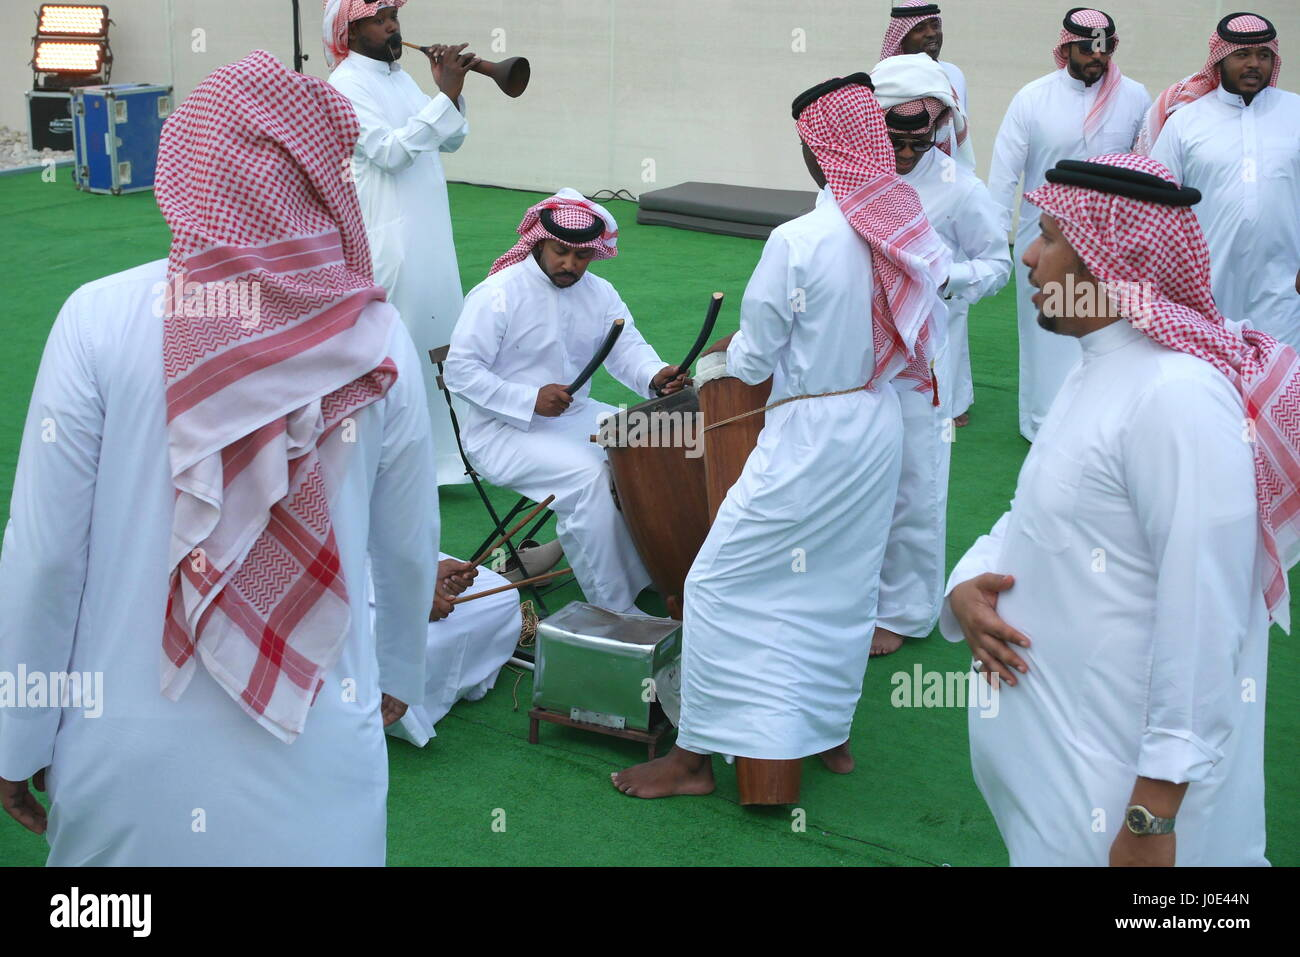 Traditional Bahrain dance accompanied by drums and mizmar (wind instrument). The men are wearing dishdashas, ghutra Stock Photo